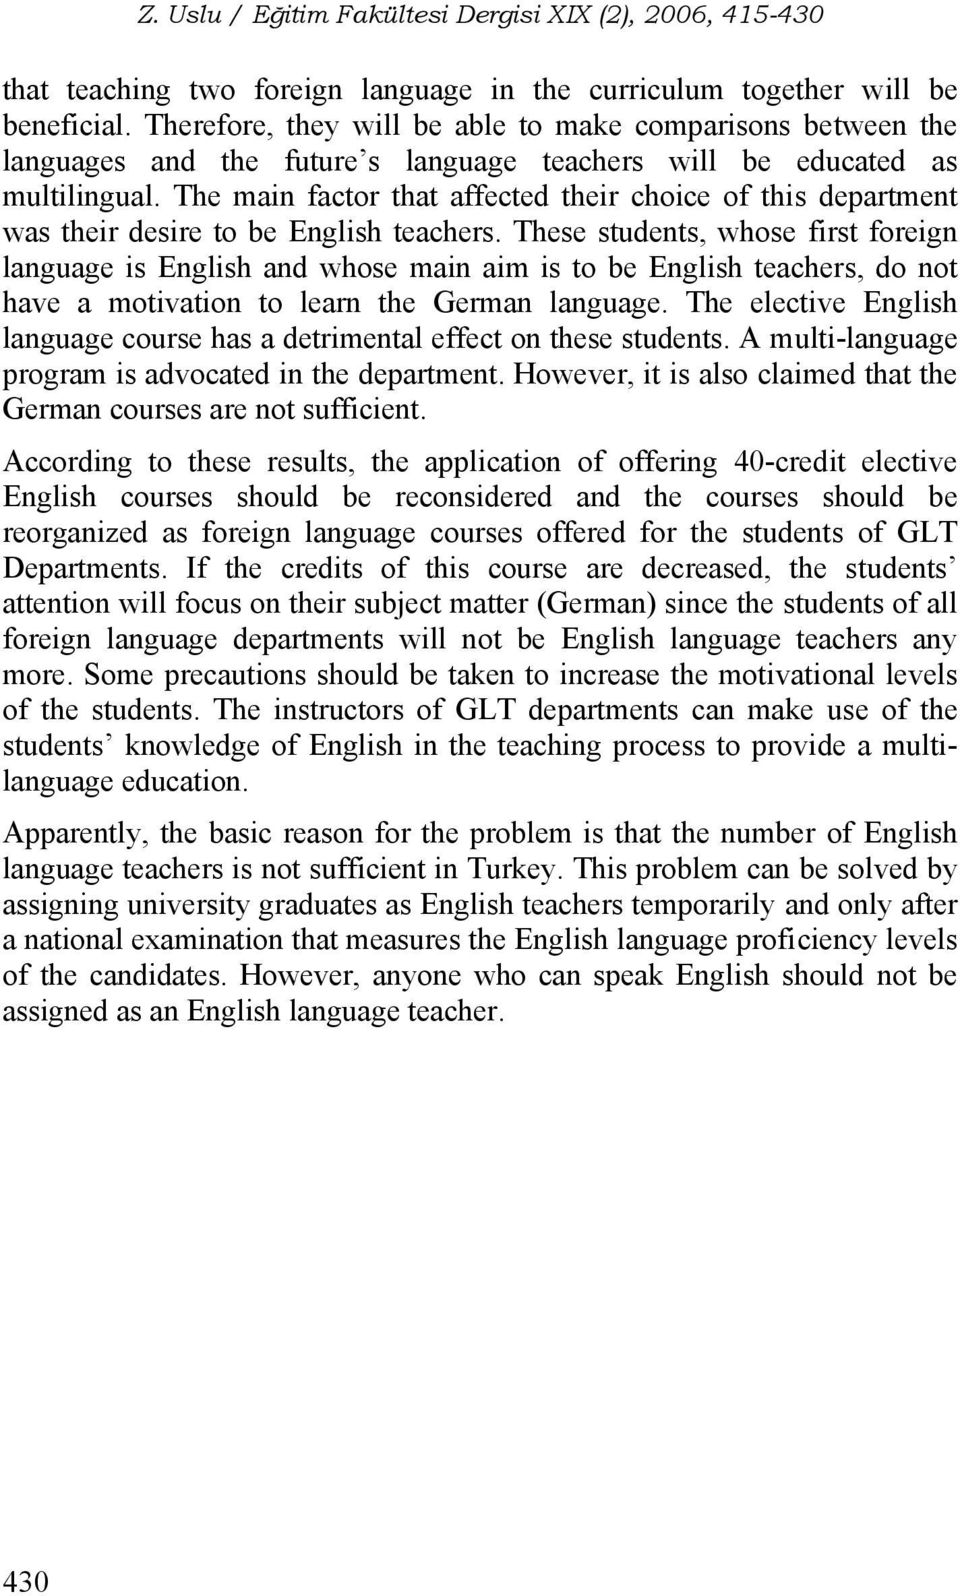 The main factor that affected their choice of this department was their desire to be English teachers.